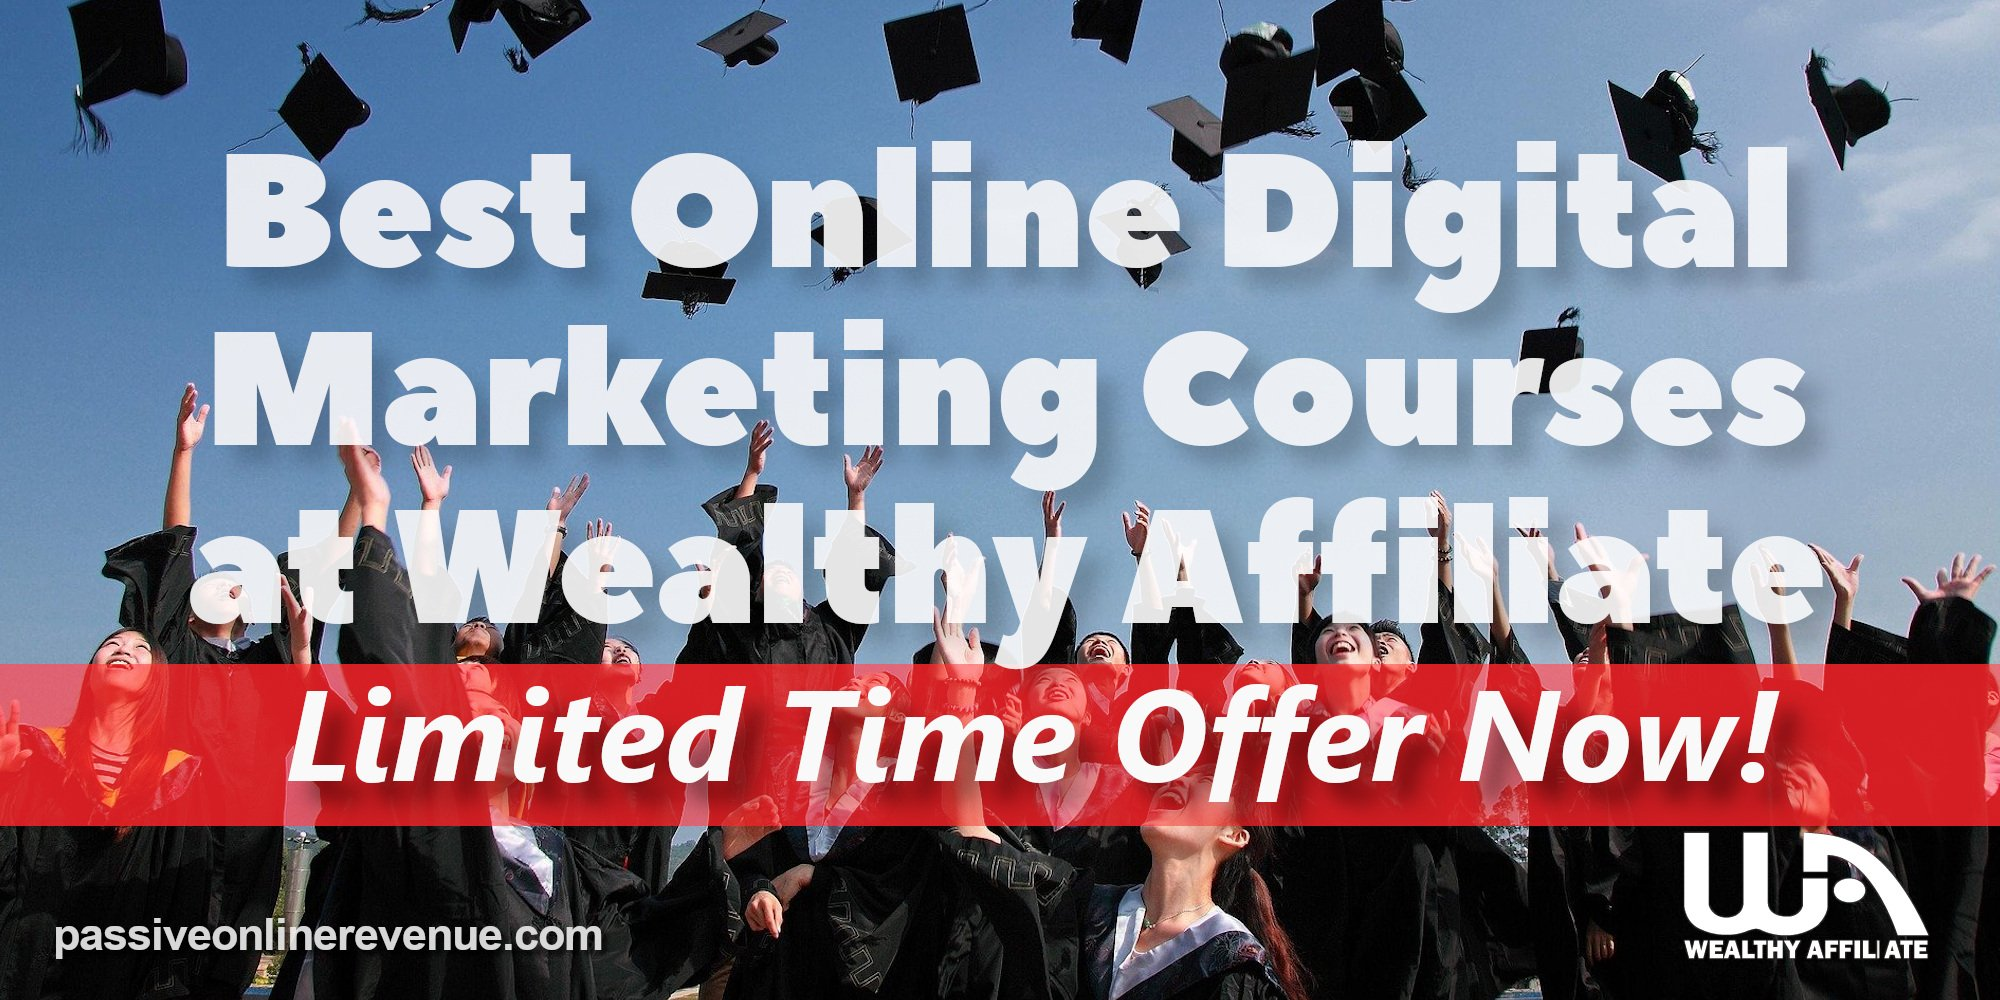 Best Online Digital Marketing Courses at Wealthy Affiliate - Limited Time Offer Now